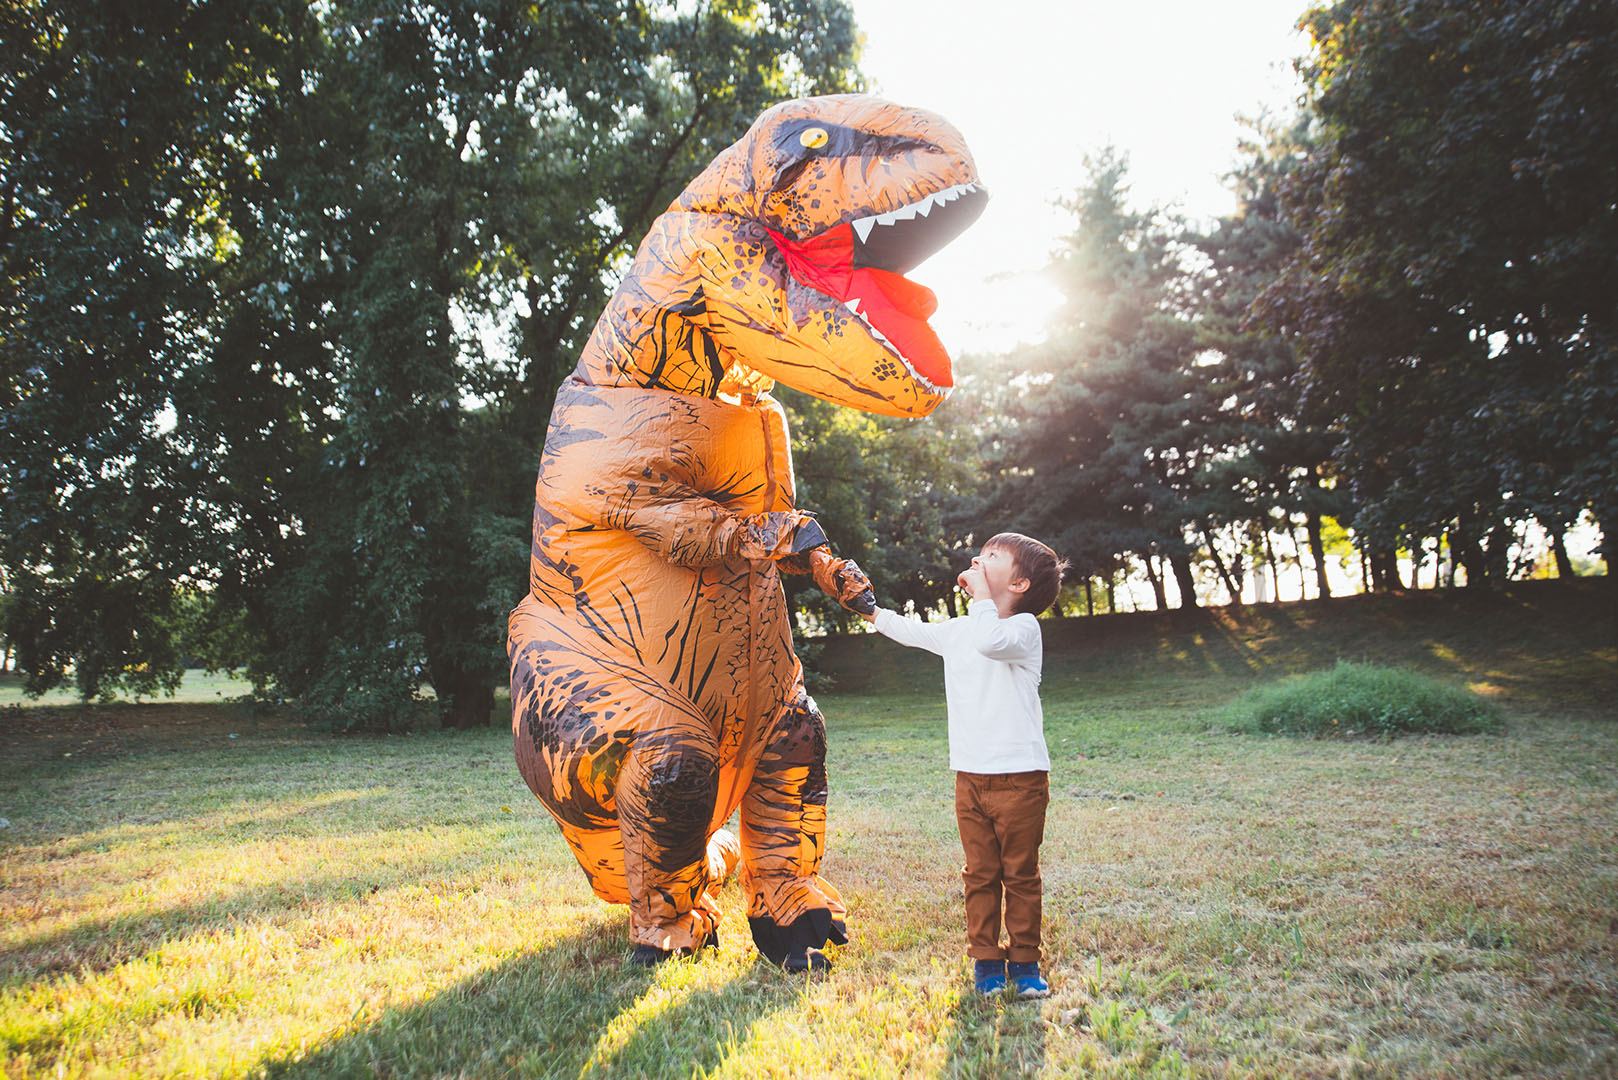 T-Rex costume and little boy